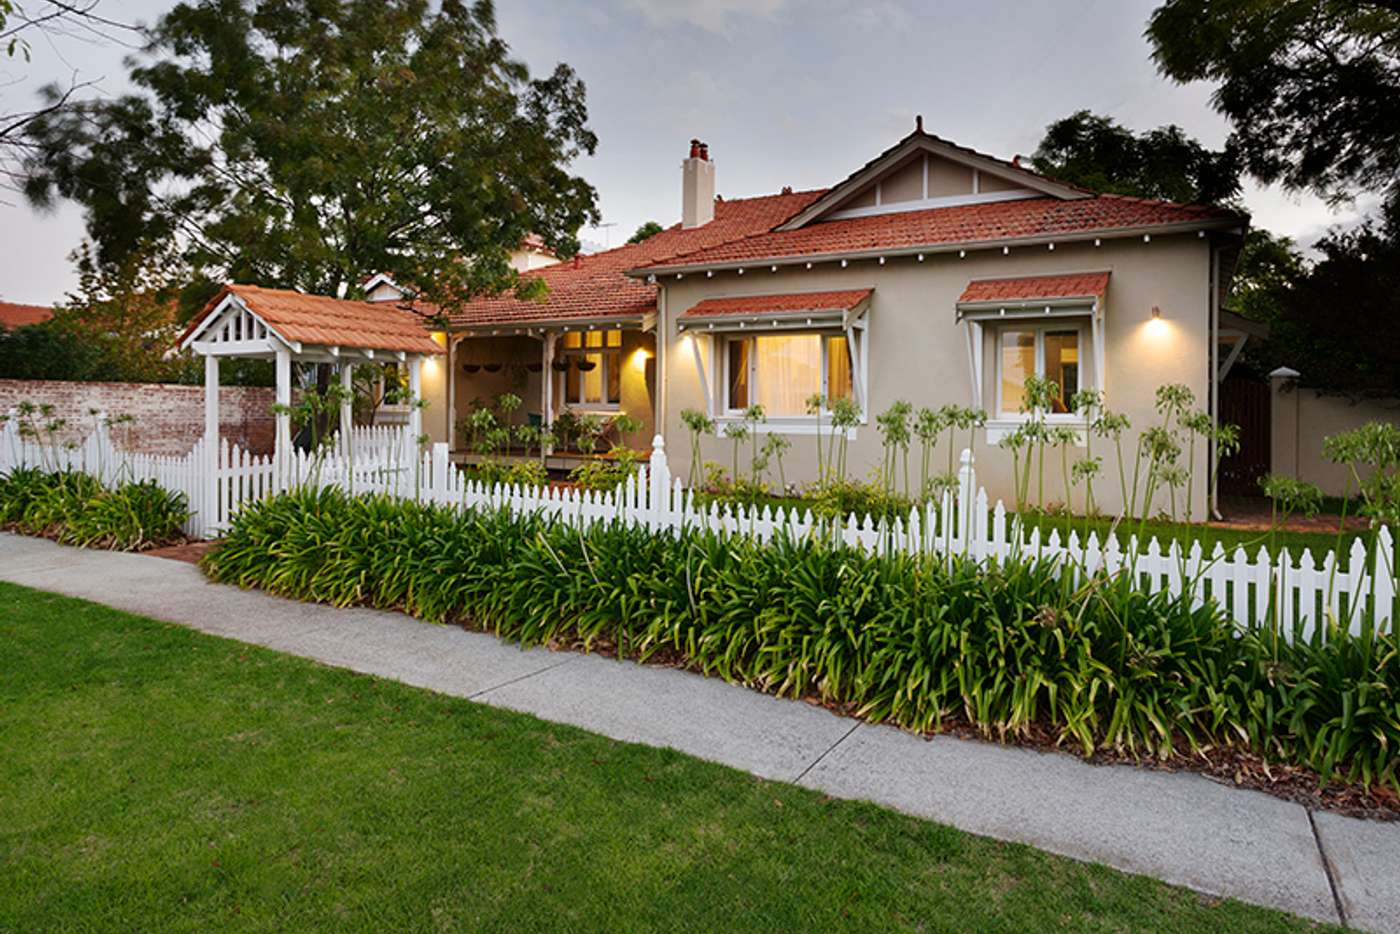 Main view of Homely house listing, 11 Frances Street, Mount Lawley WA 6050